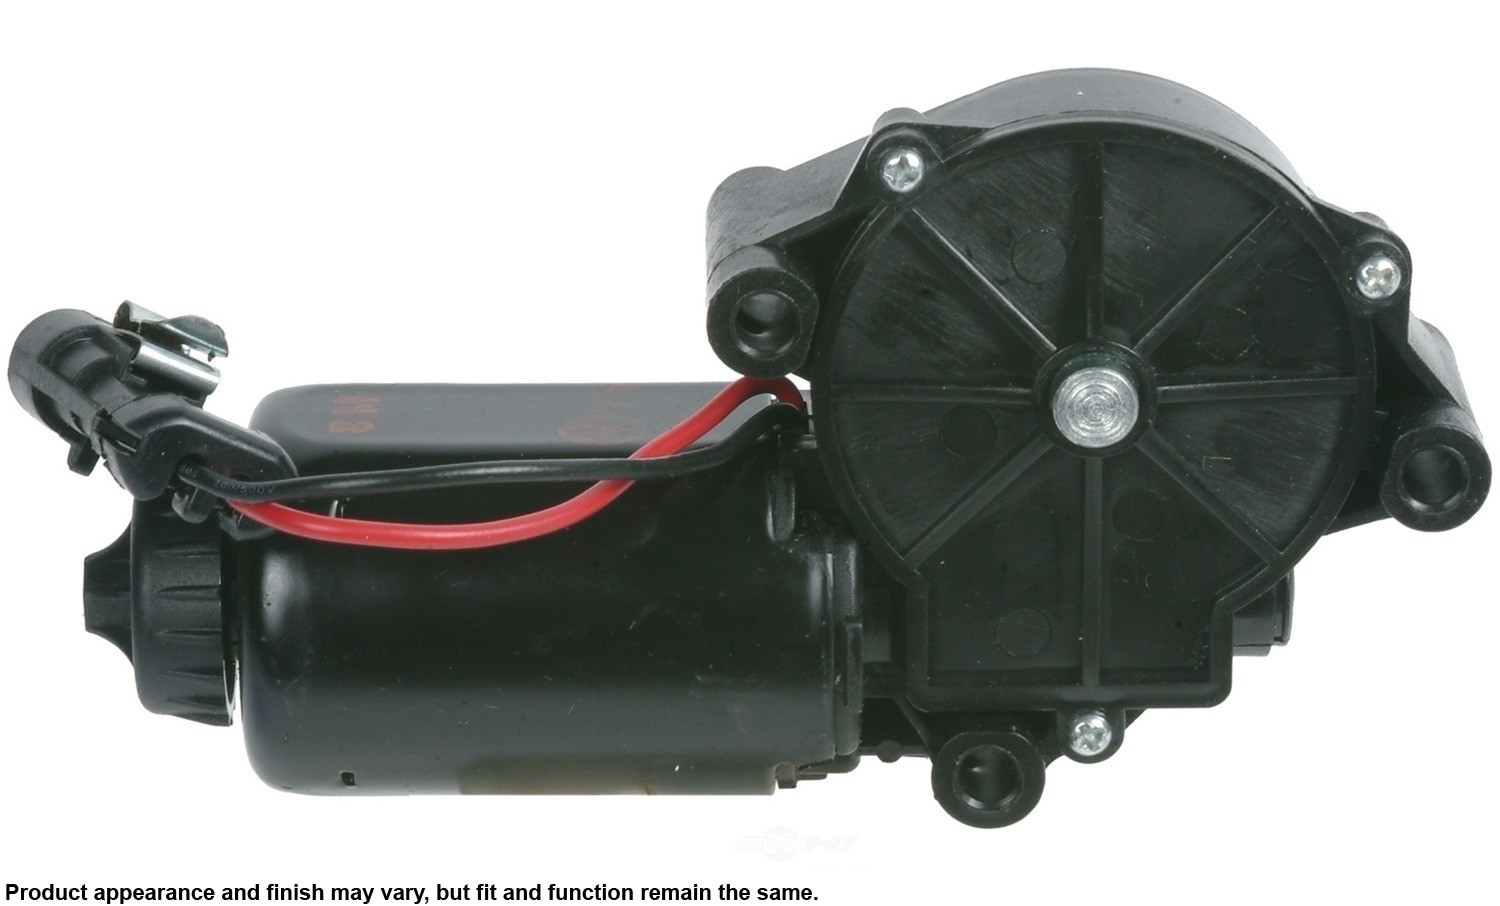 CARDONE NEW - Headlight Motor - A1S 82-9120H